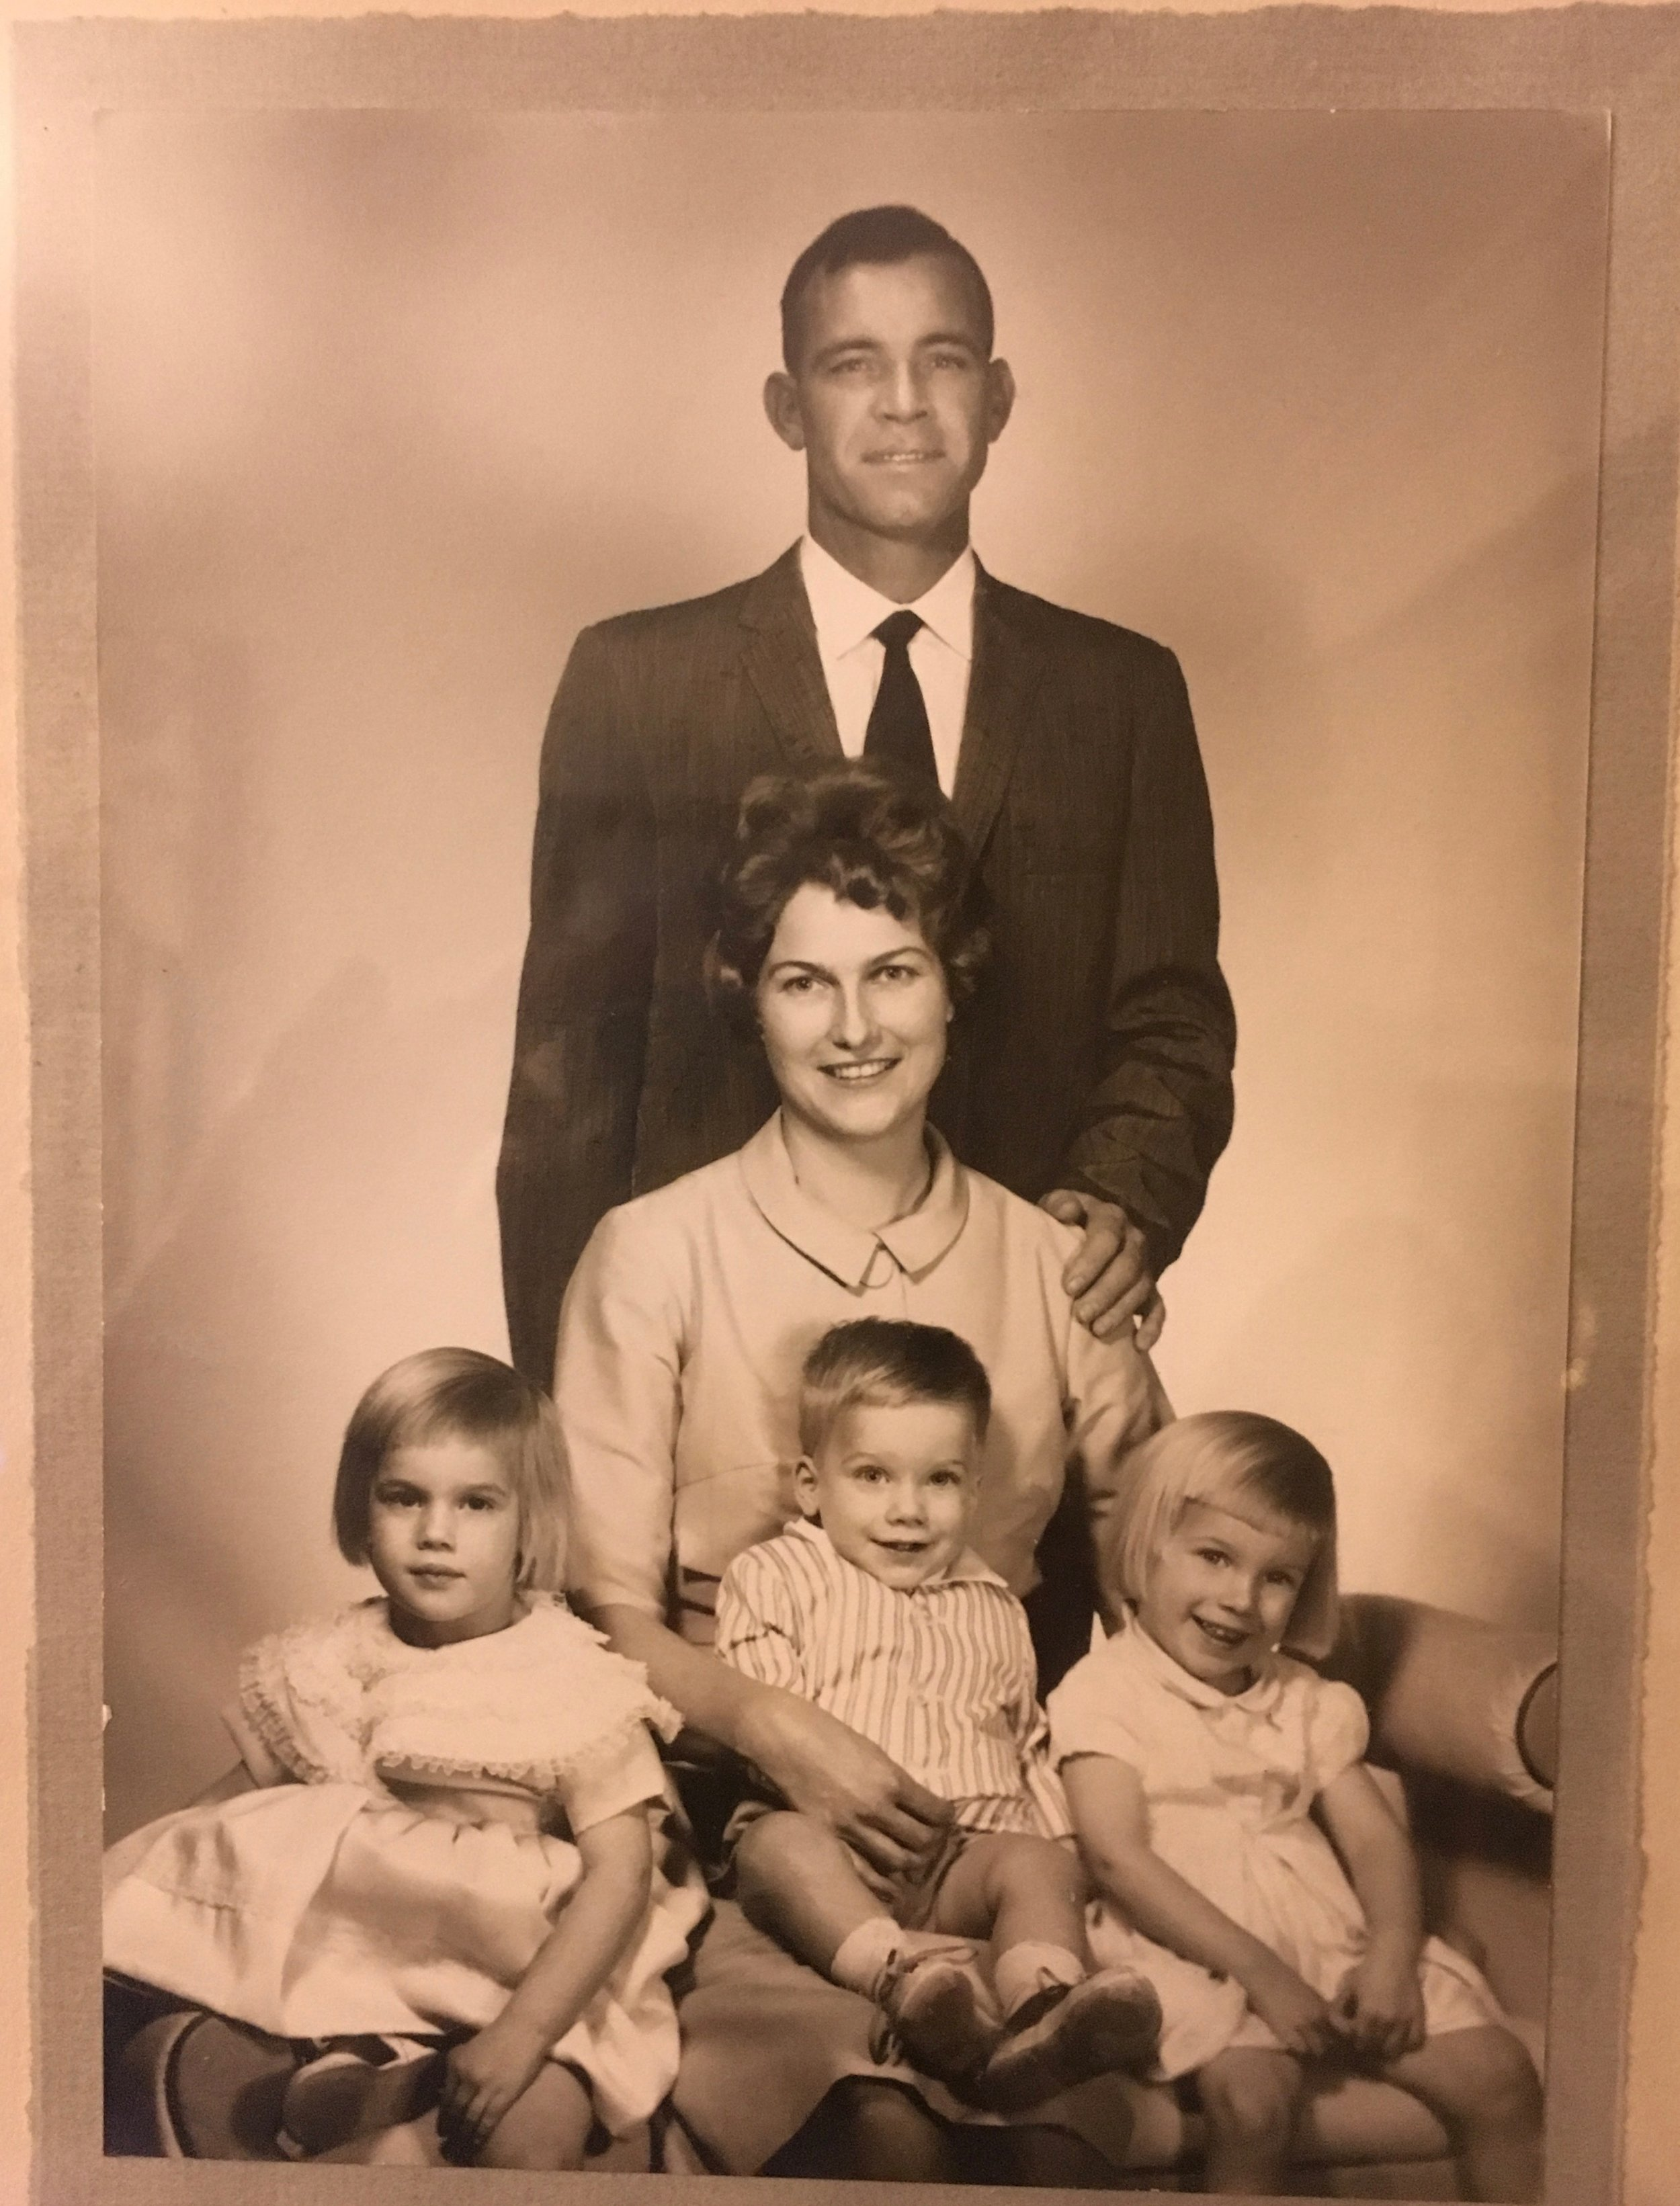 Family photo, early 1960s. Bonnie is on the right, brother Woody is in the middle, and Barbara is on the left.